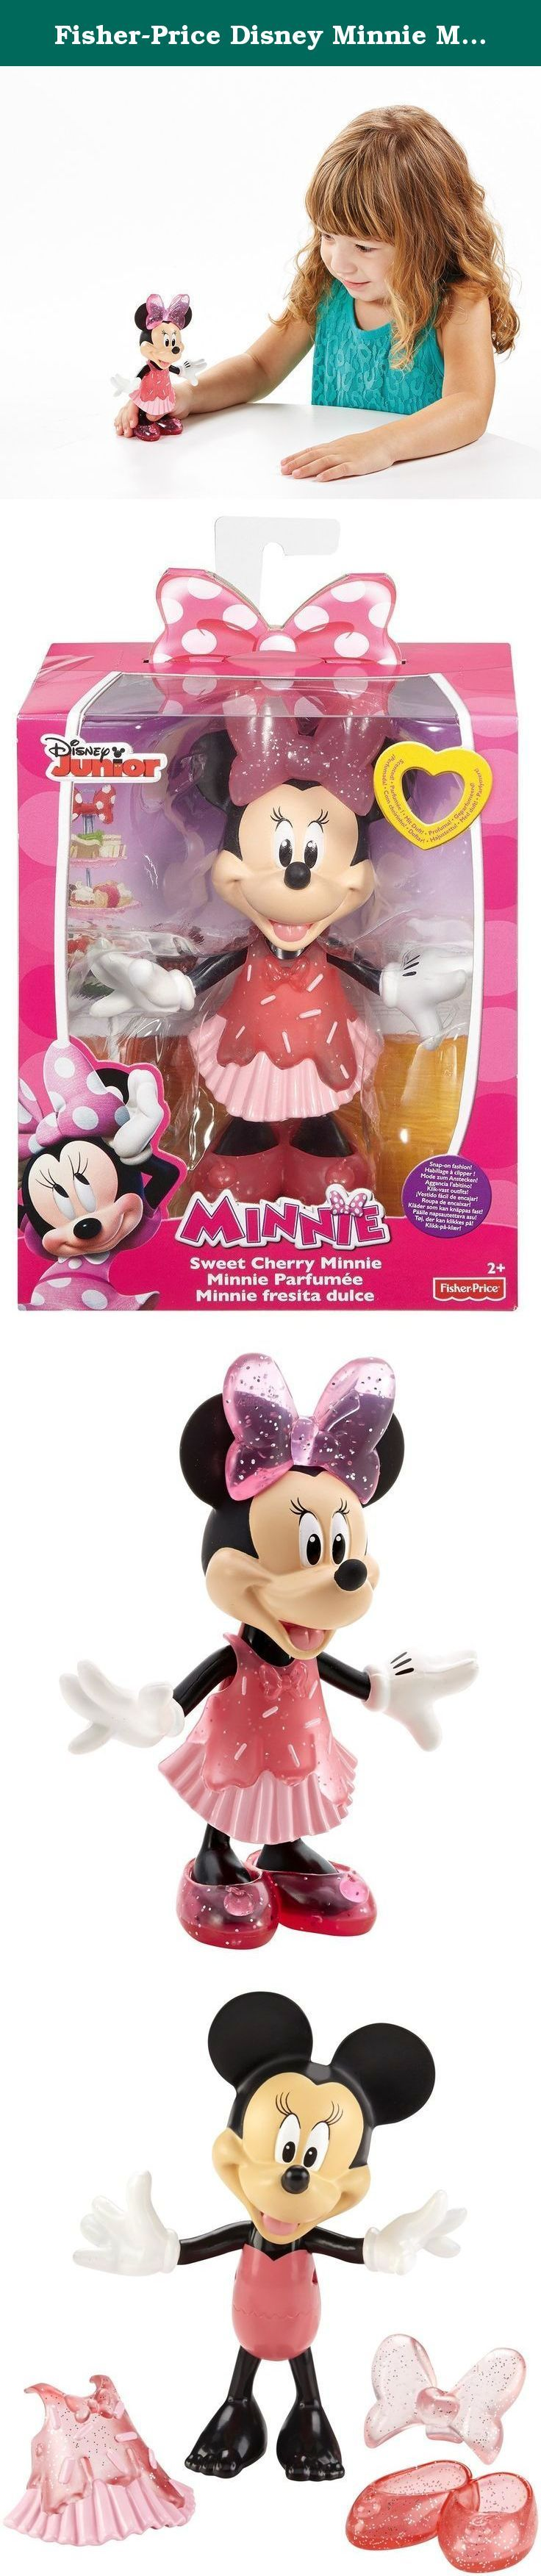 """Fisher-Price Disney Minnie Mouse Sweet Cherry Doll Set. Minnie Mouse is a sweet dream in her cherry inspired easy Snap-On dress! Minnie """"delicious"""" outfit comes with a lovely cherry-colored bow, cupcake sprinkle dress and sweet Snap-On shoes. But not only does Minnie look sweet – she smells sweet as well! includes a 5-inch cherry-scented Minnie dress-up doll, Snap-On dress, bow and shoes."""